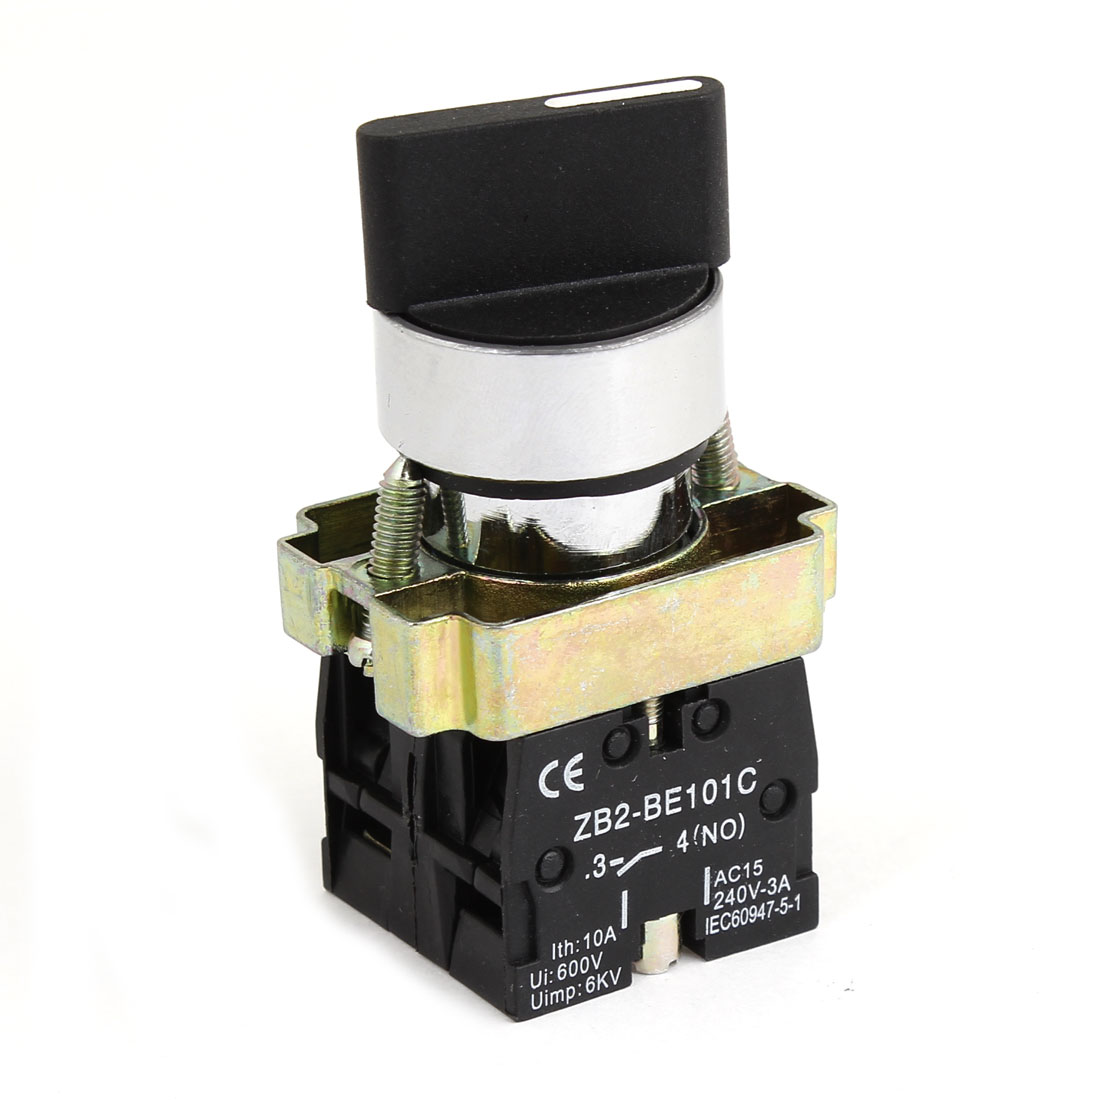 UXCELL Material Ac 250V 3A On Off On Dpst Rotary Selector Latching Knob Switch metal | plastic, uxcell on off 2 position 3p latching power push button switch ac 220v 10a w cover latching